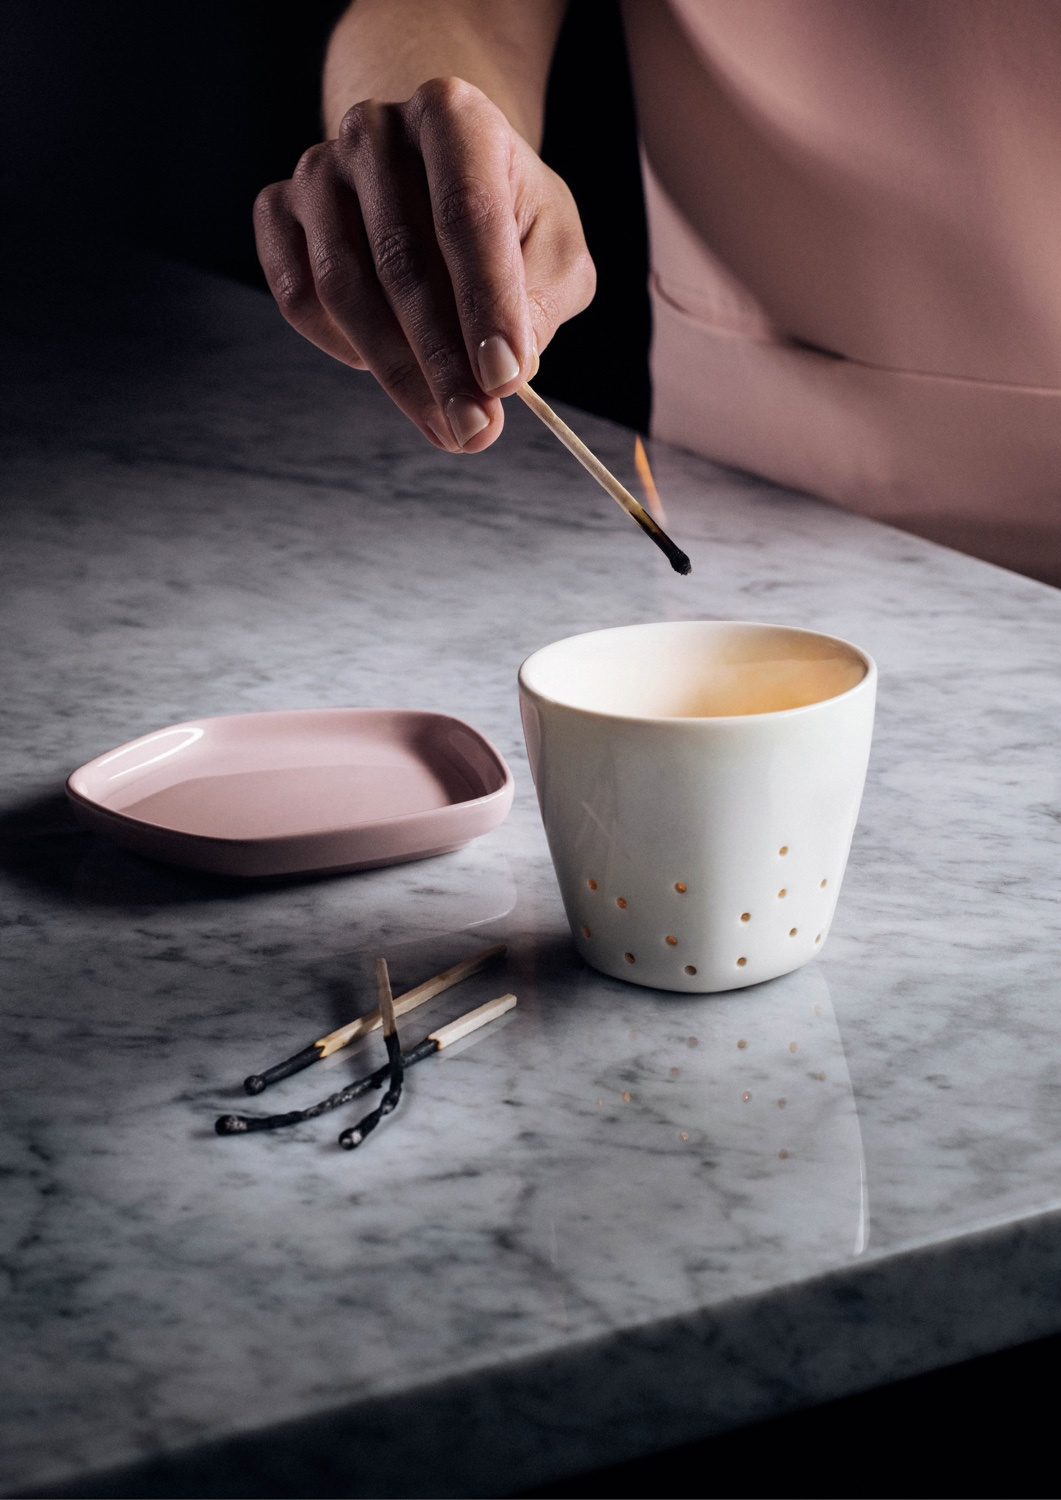 Iittala X Issey Miyake 'Pause For Harmony' collection. This collaboration pairs the intricate and curious worlds of Finnish and Japanese design, bringing a sense of harmony to the home. Image © Fiskars Finland.